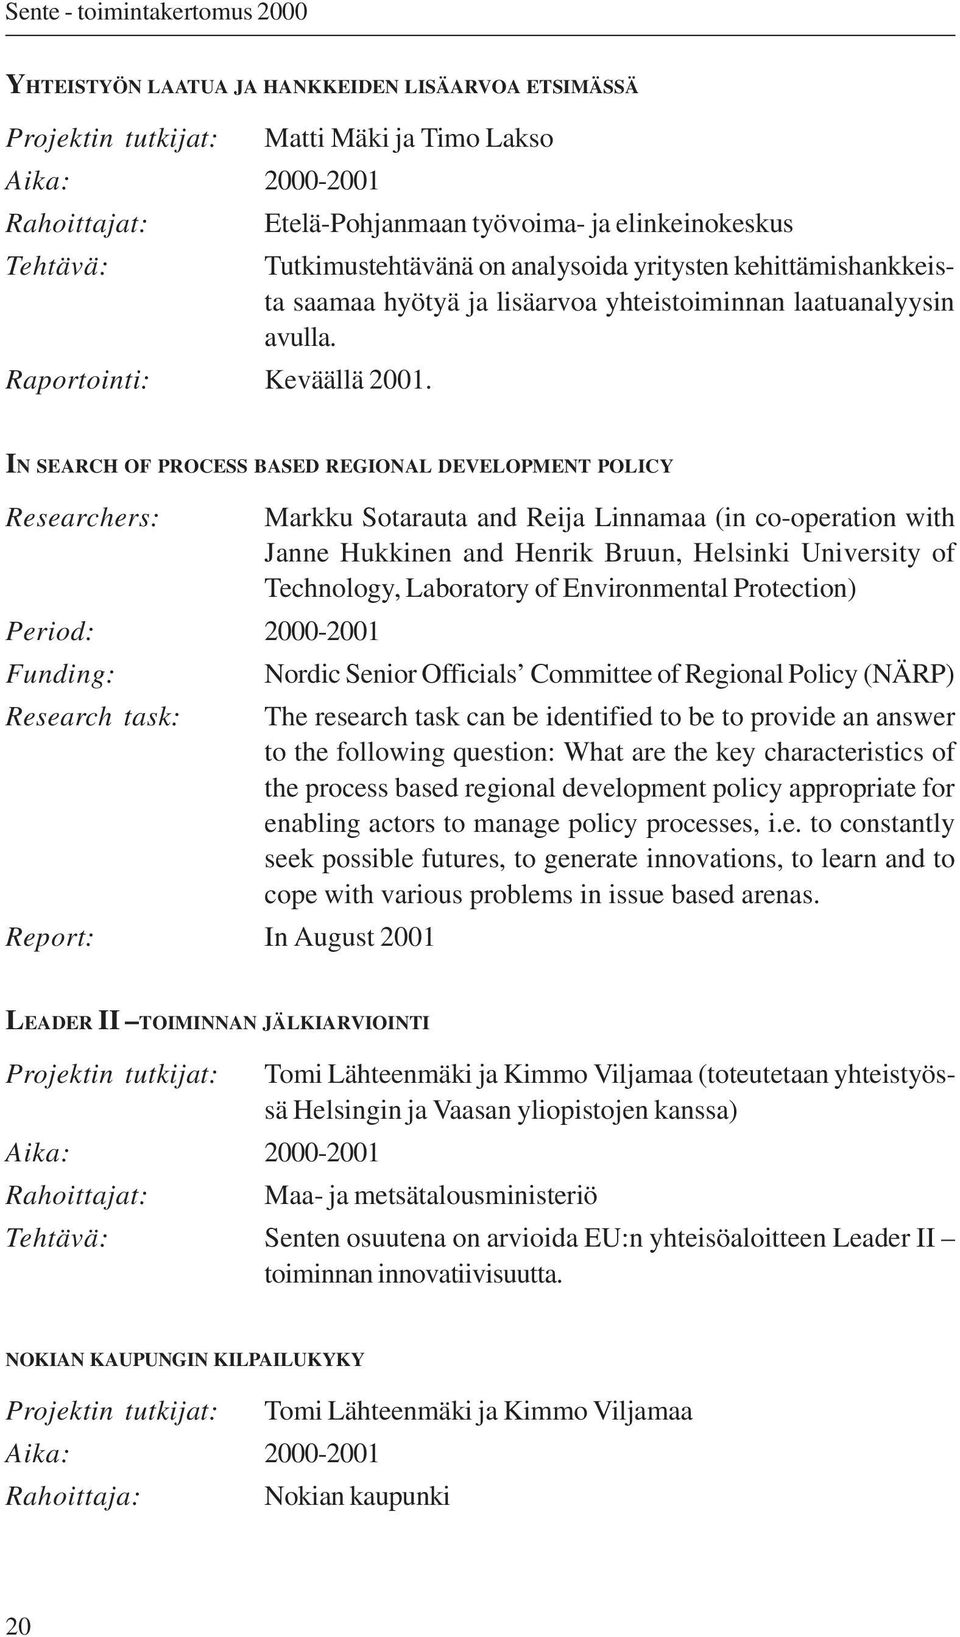 IN SEARCH OF PROCESS BASED REGIONAL DEVELOPMENT POLICY Researchers: Markku Sotarauta and Reija Linnamaa (in co-operation with Janne Hukkinen and Henrik Bruun, Helsinki University of Technology,